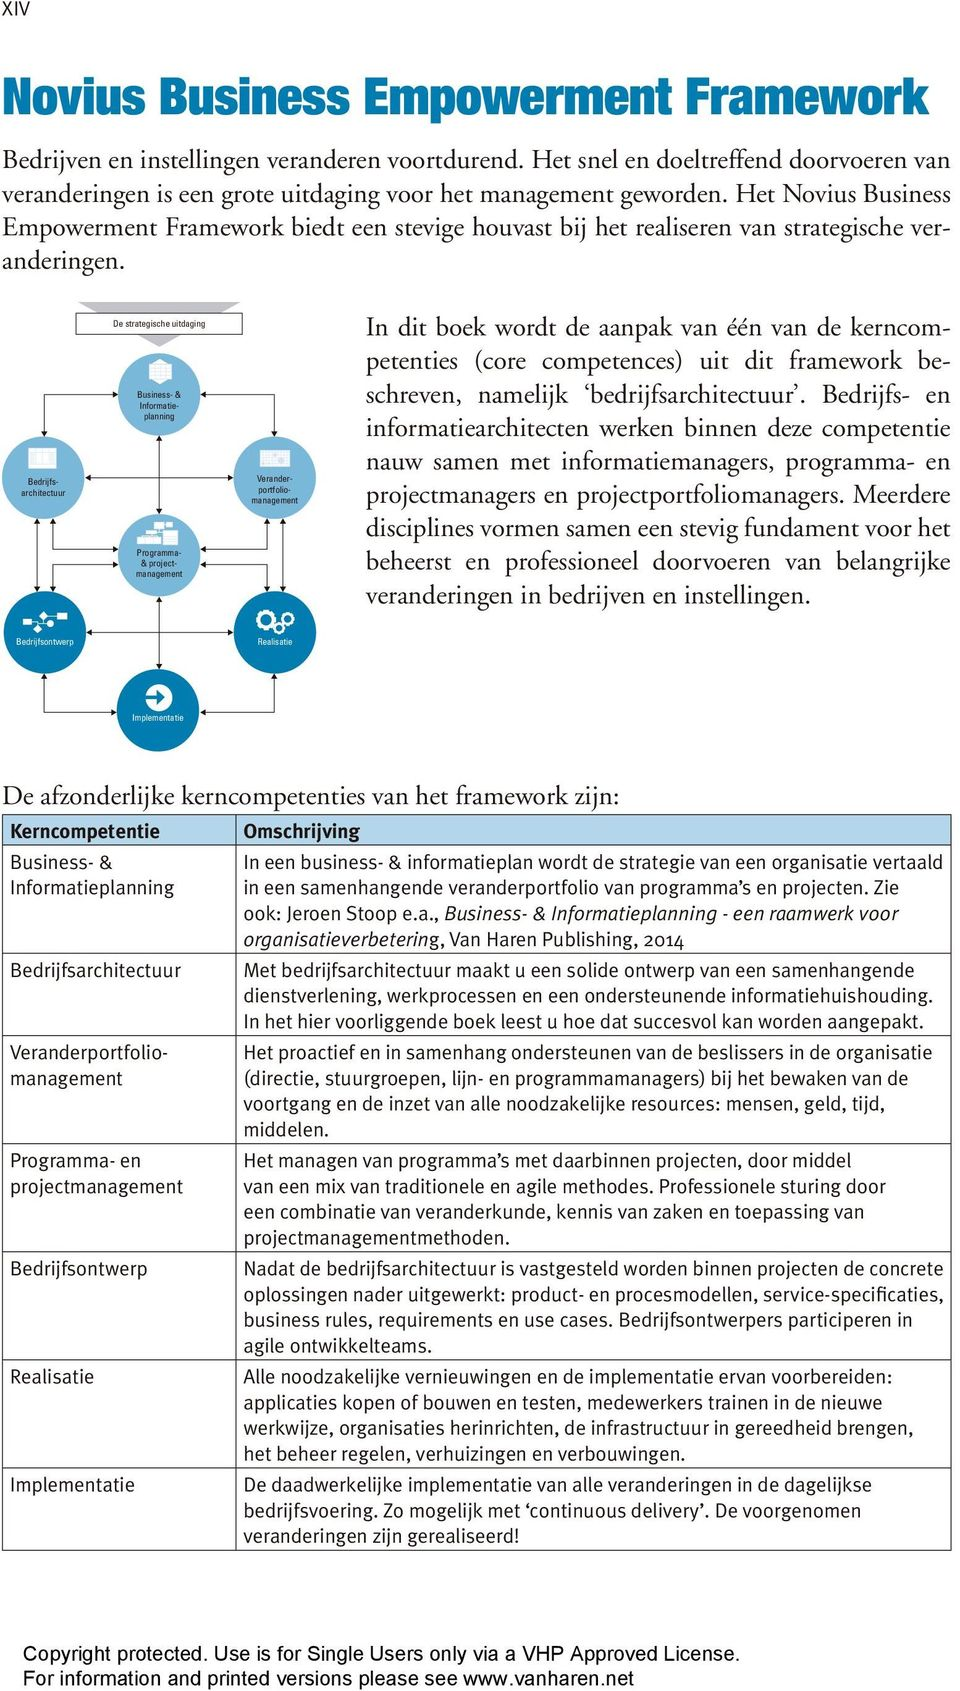 De strategische uitdaging Business- & Informatieplanning Programma- & projectmanagement Bedrijfsarchitectuur Veranderportfoliomanagement In dit boek wordt de aanpak van één van de kerncompetenties